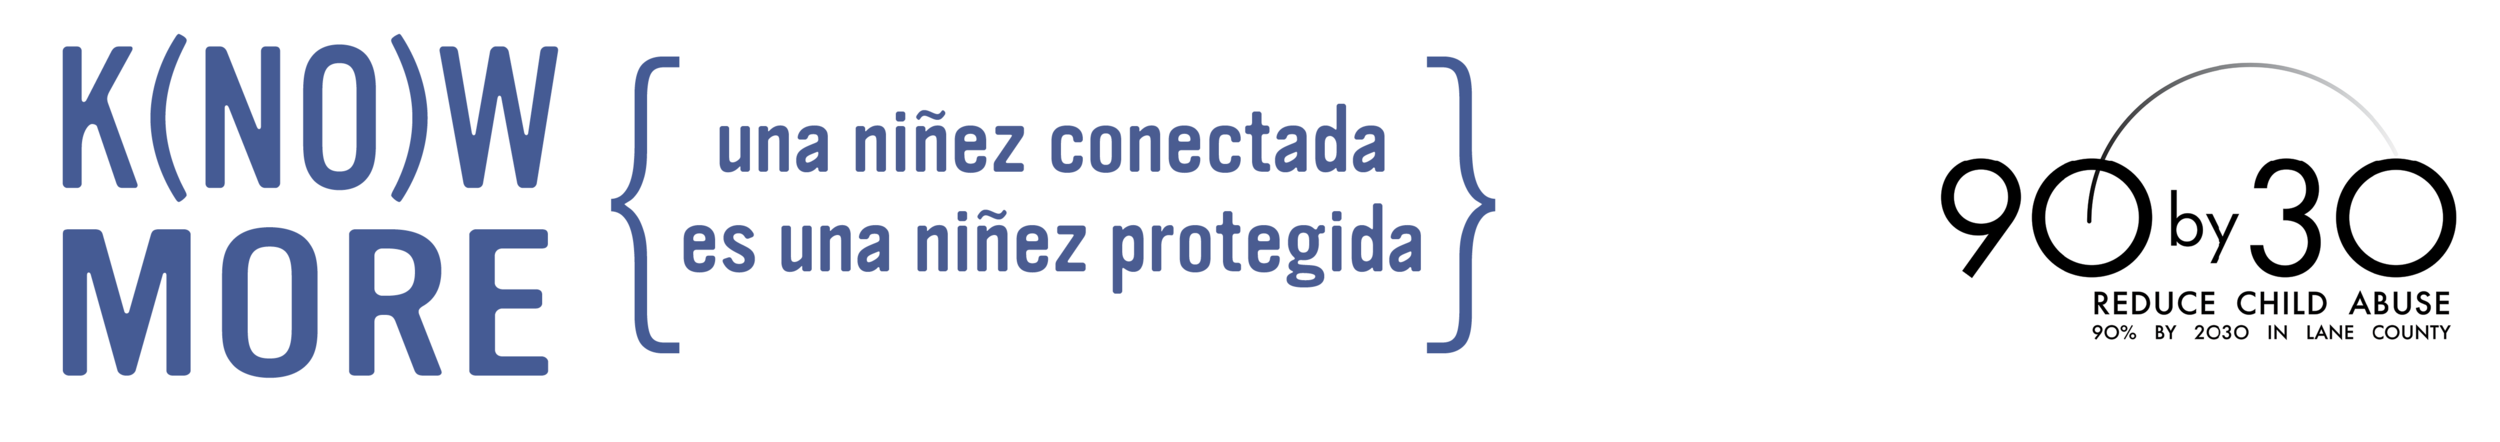 Know More logo spanish.png